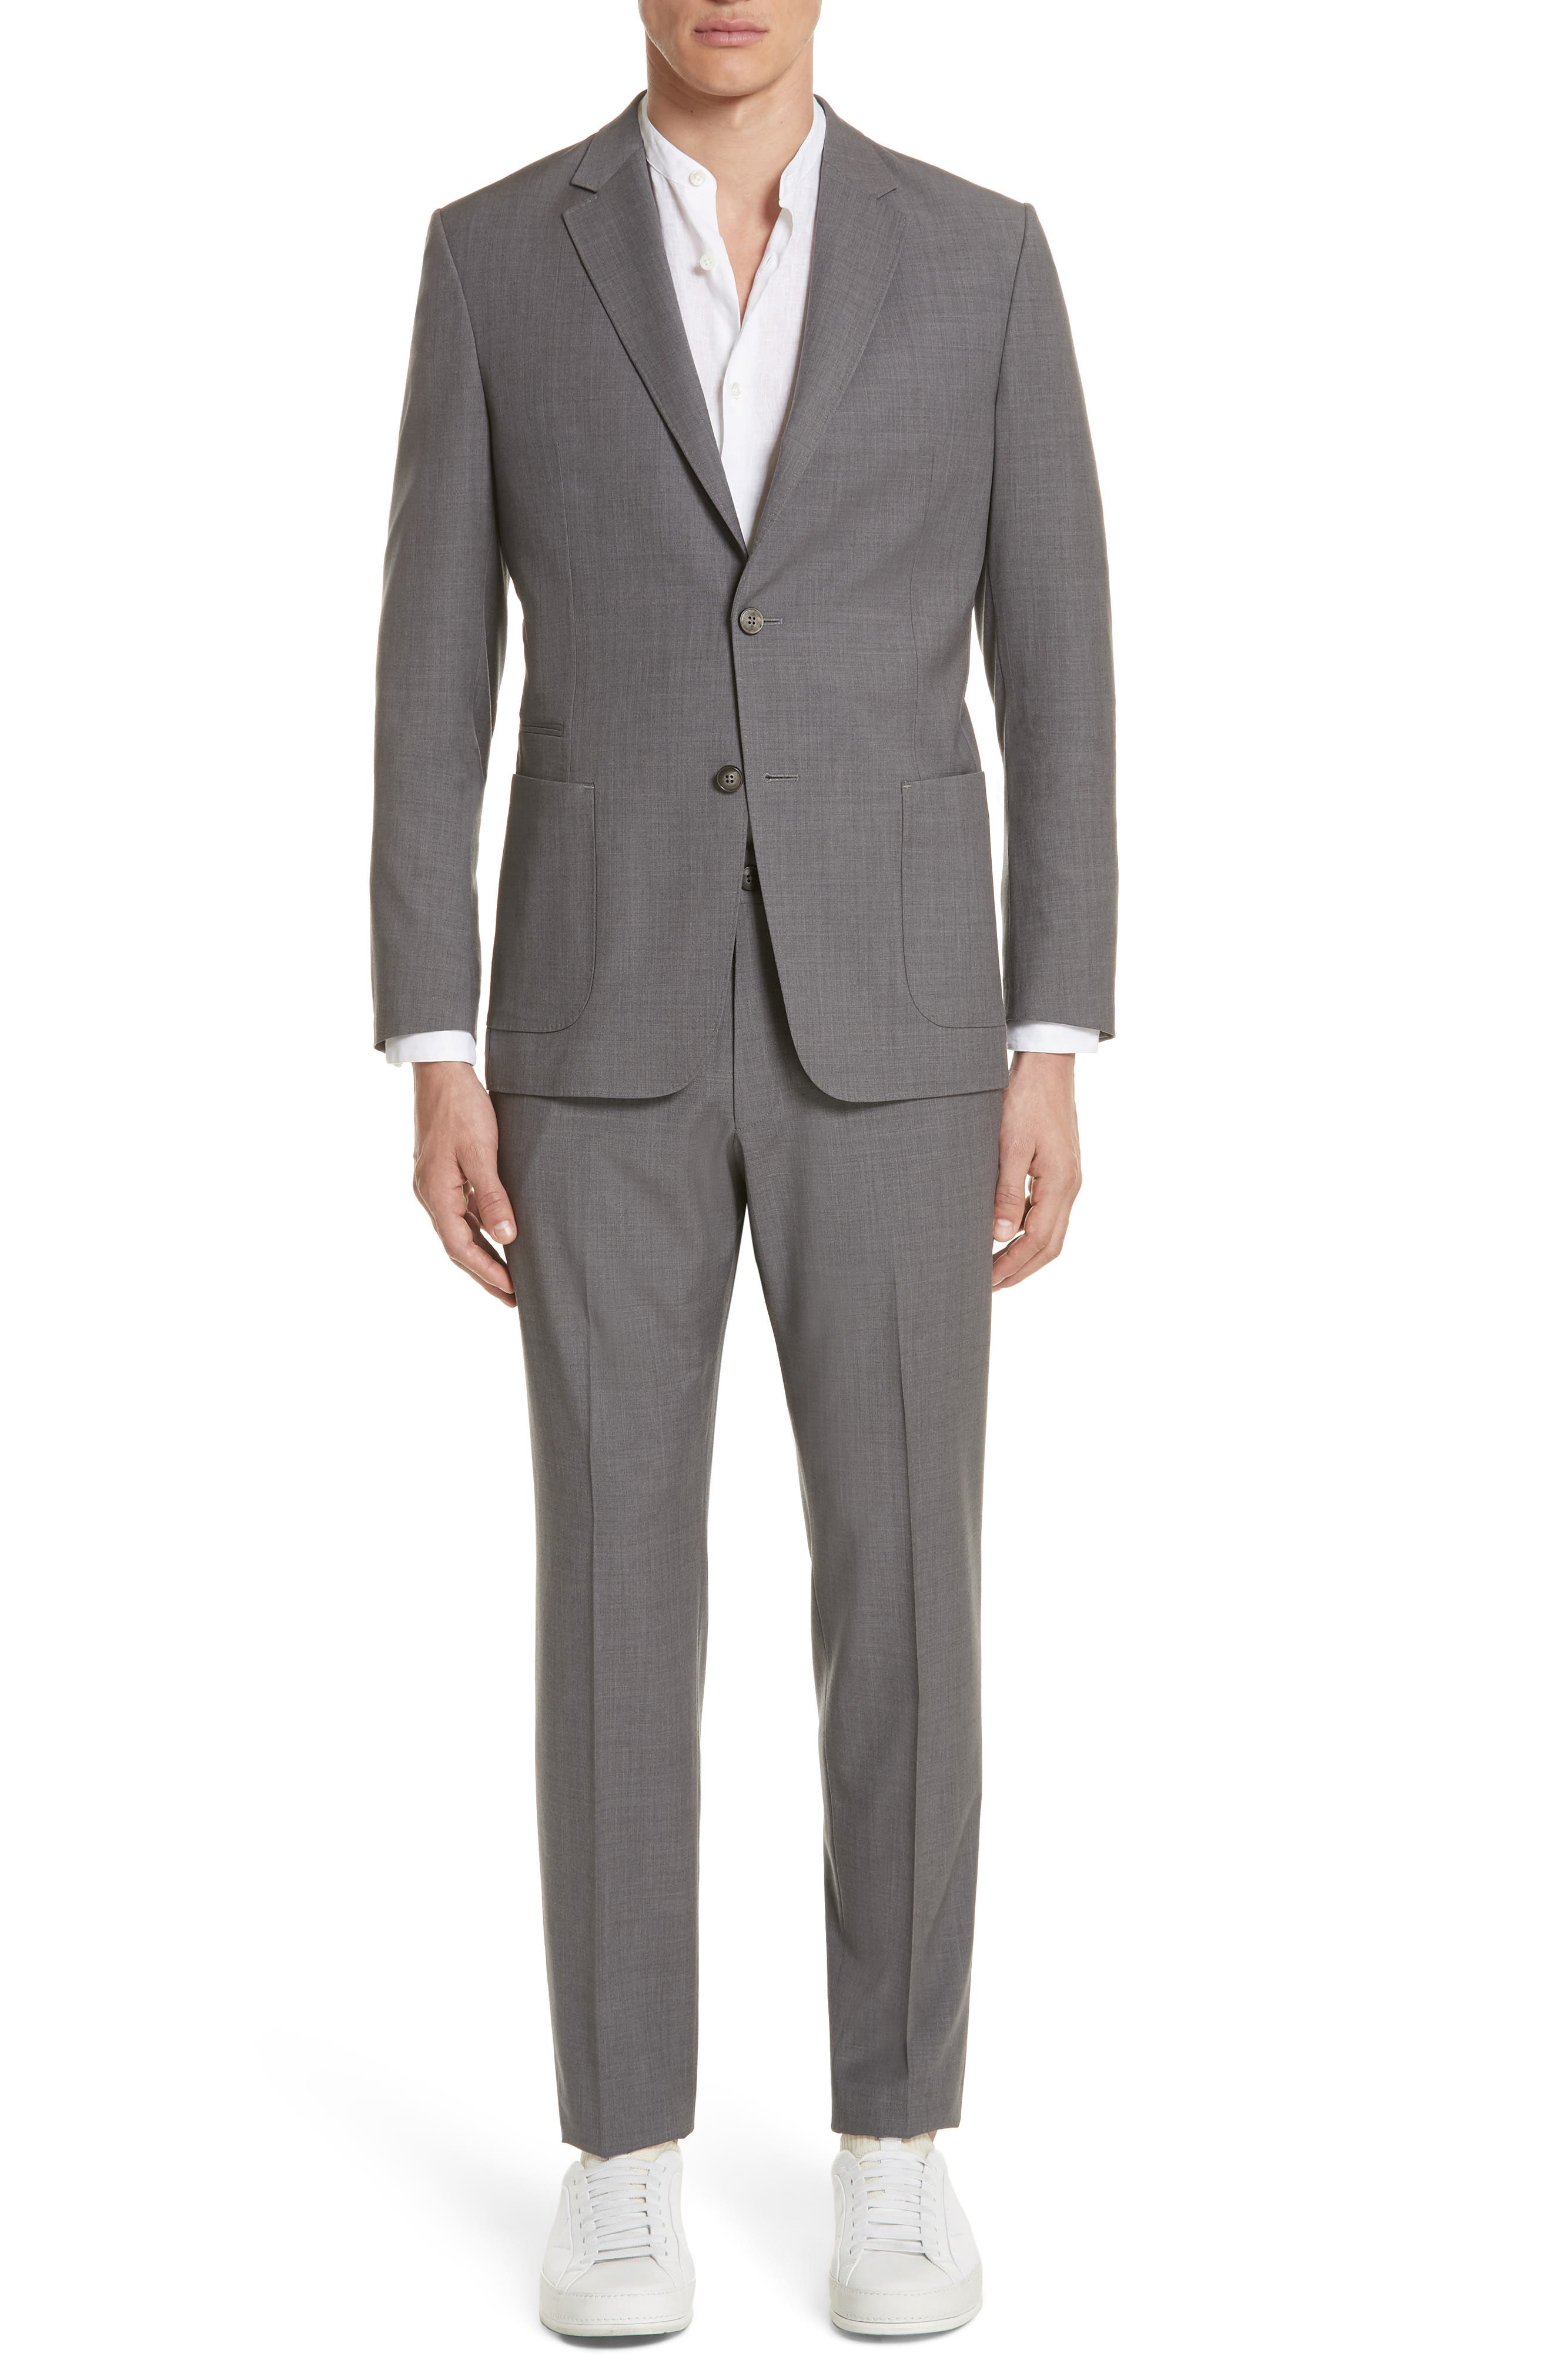 TECHMERINO<sup>™</sup> Wash & Go Trim Fit Solid Wool Suit,                         Main,                         color, Solid Grey